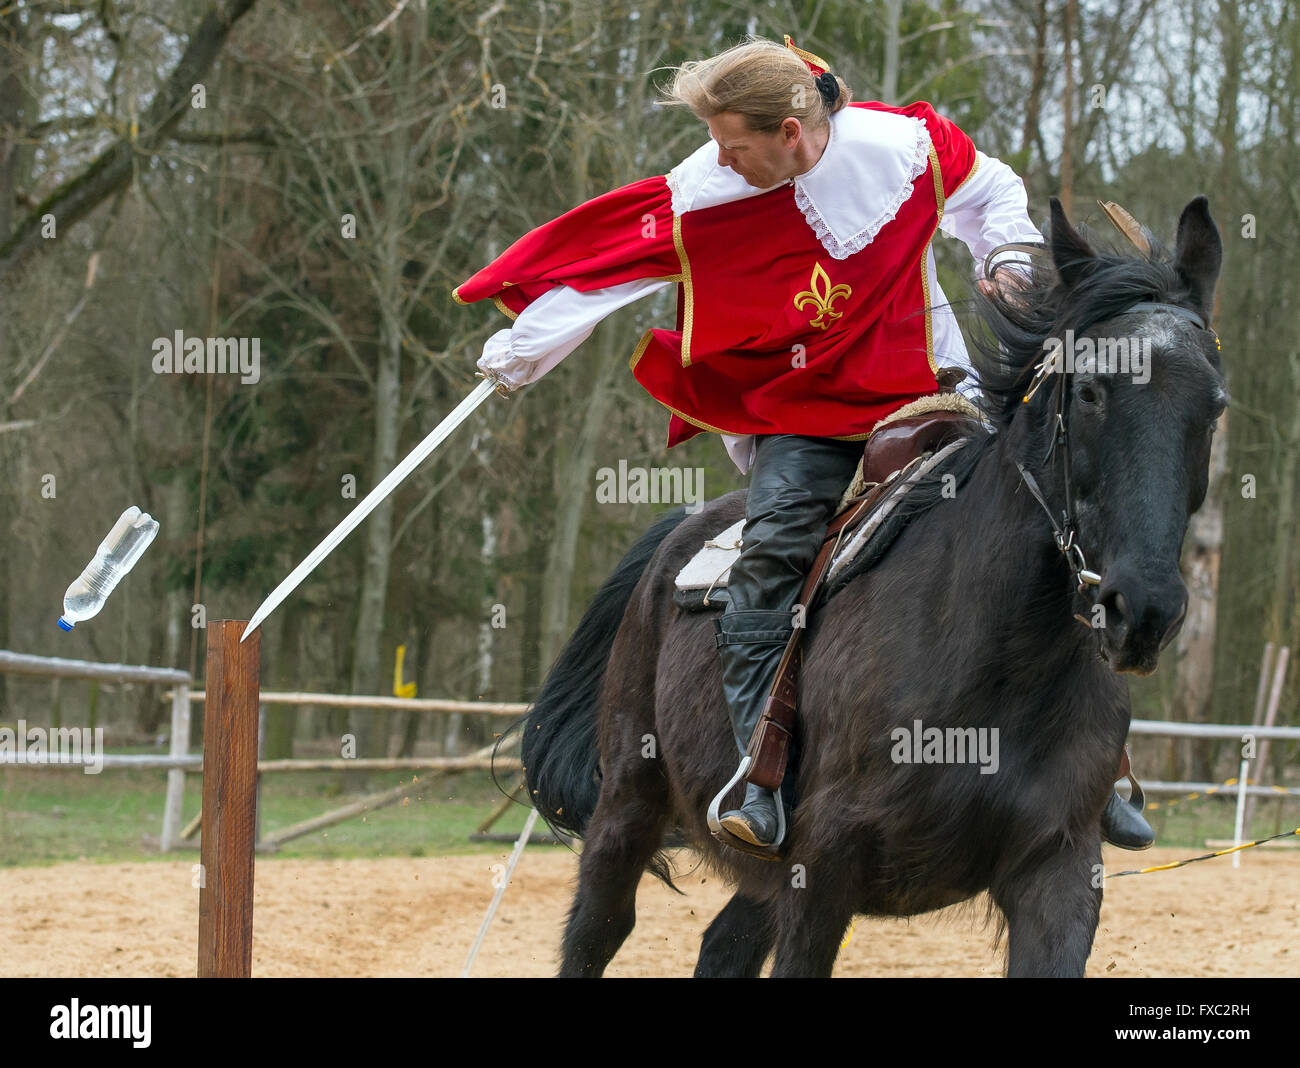 Muencheberg, Germany. 04th Apr, 2016. Stunt rider Christian Scholle-Prestin rides his horse Fritz at full gallop - Stock Image